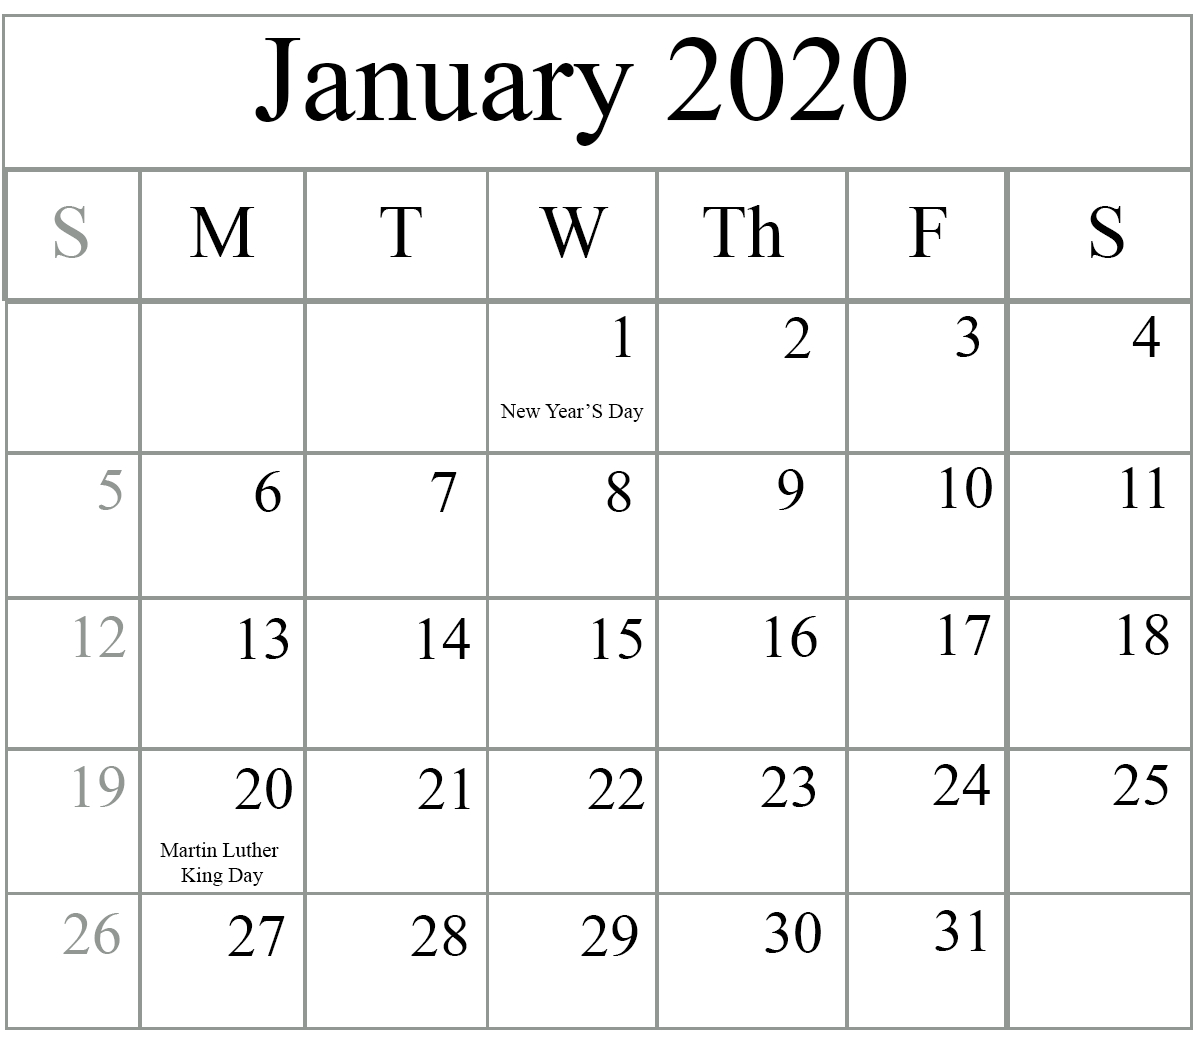 Free January 2020 Printable Calendar In Pdf, Excel & Word in 2020 Printable Calendar By Month